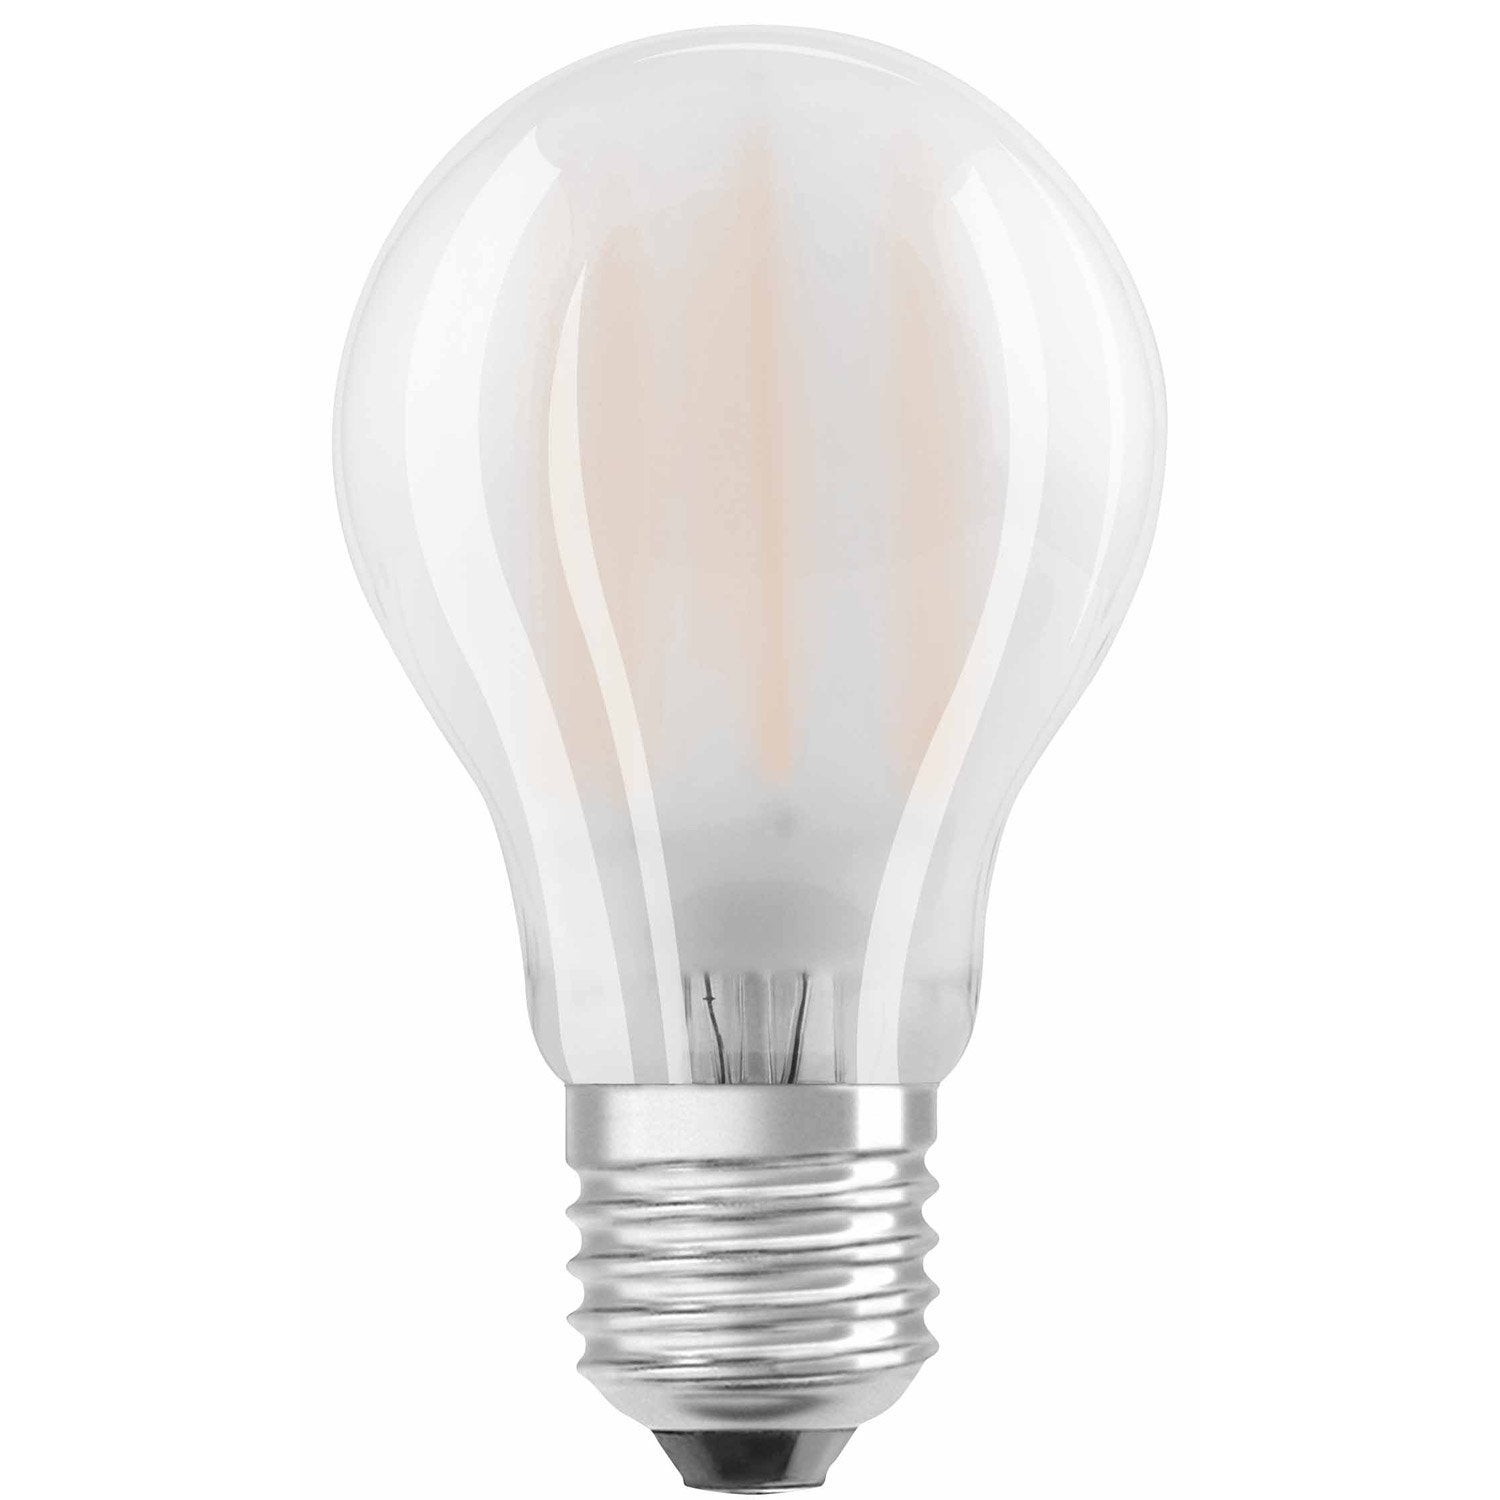 Filament Led Bulb E27 Dimmable 6 5w 806lm Equiv 60w 4000k